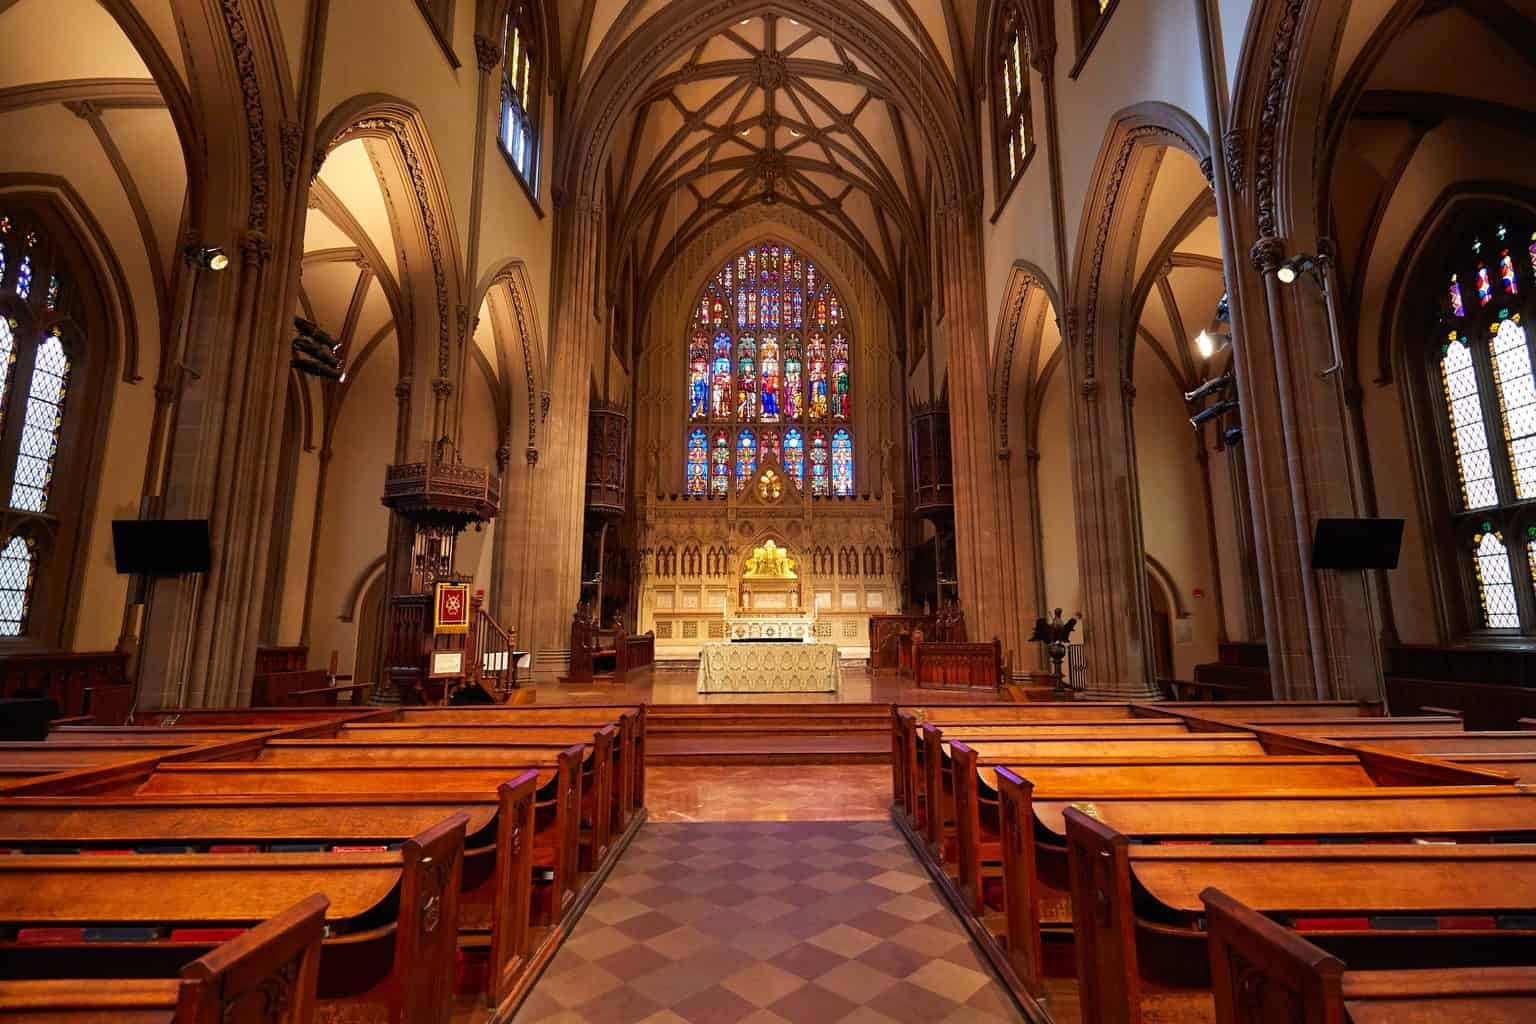 Beautiful stained glass windows and quaint wooden pews make up the interior of New York City's famous, Trinity Church,